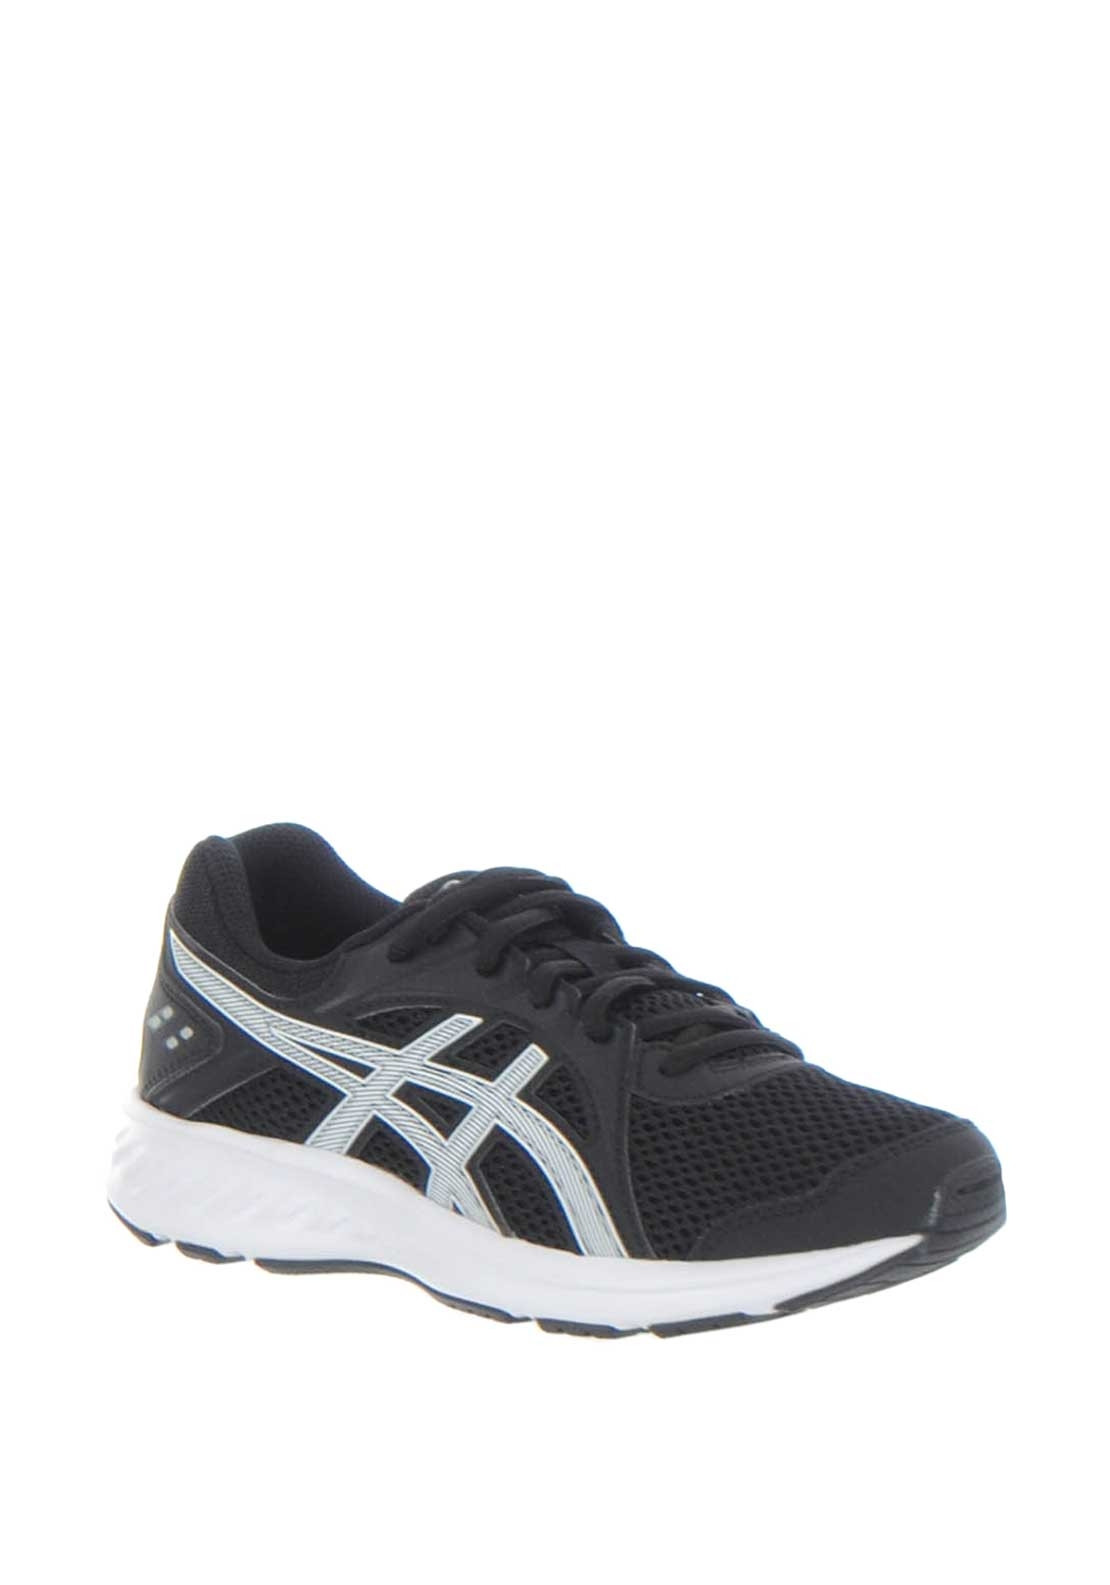 sports shoes 2812f d8883 Asics Boys Jolt 2 Trainers, Black. Be the first to review this product